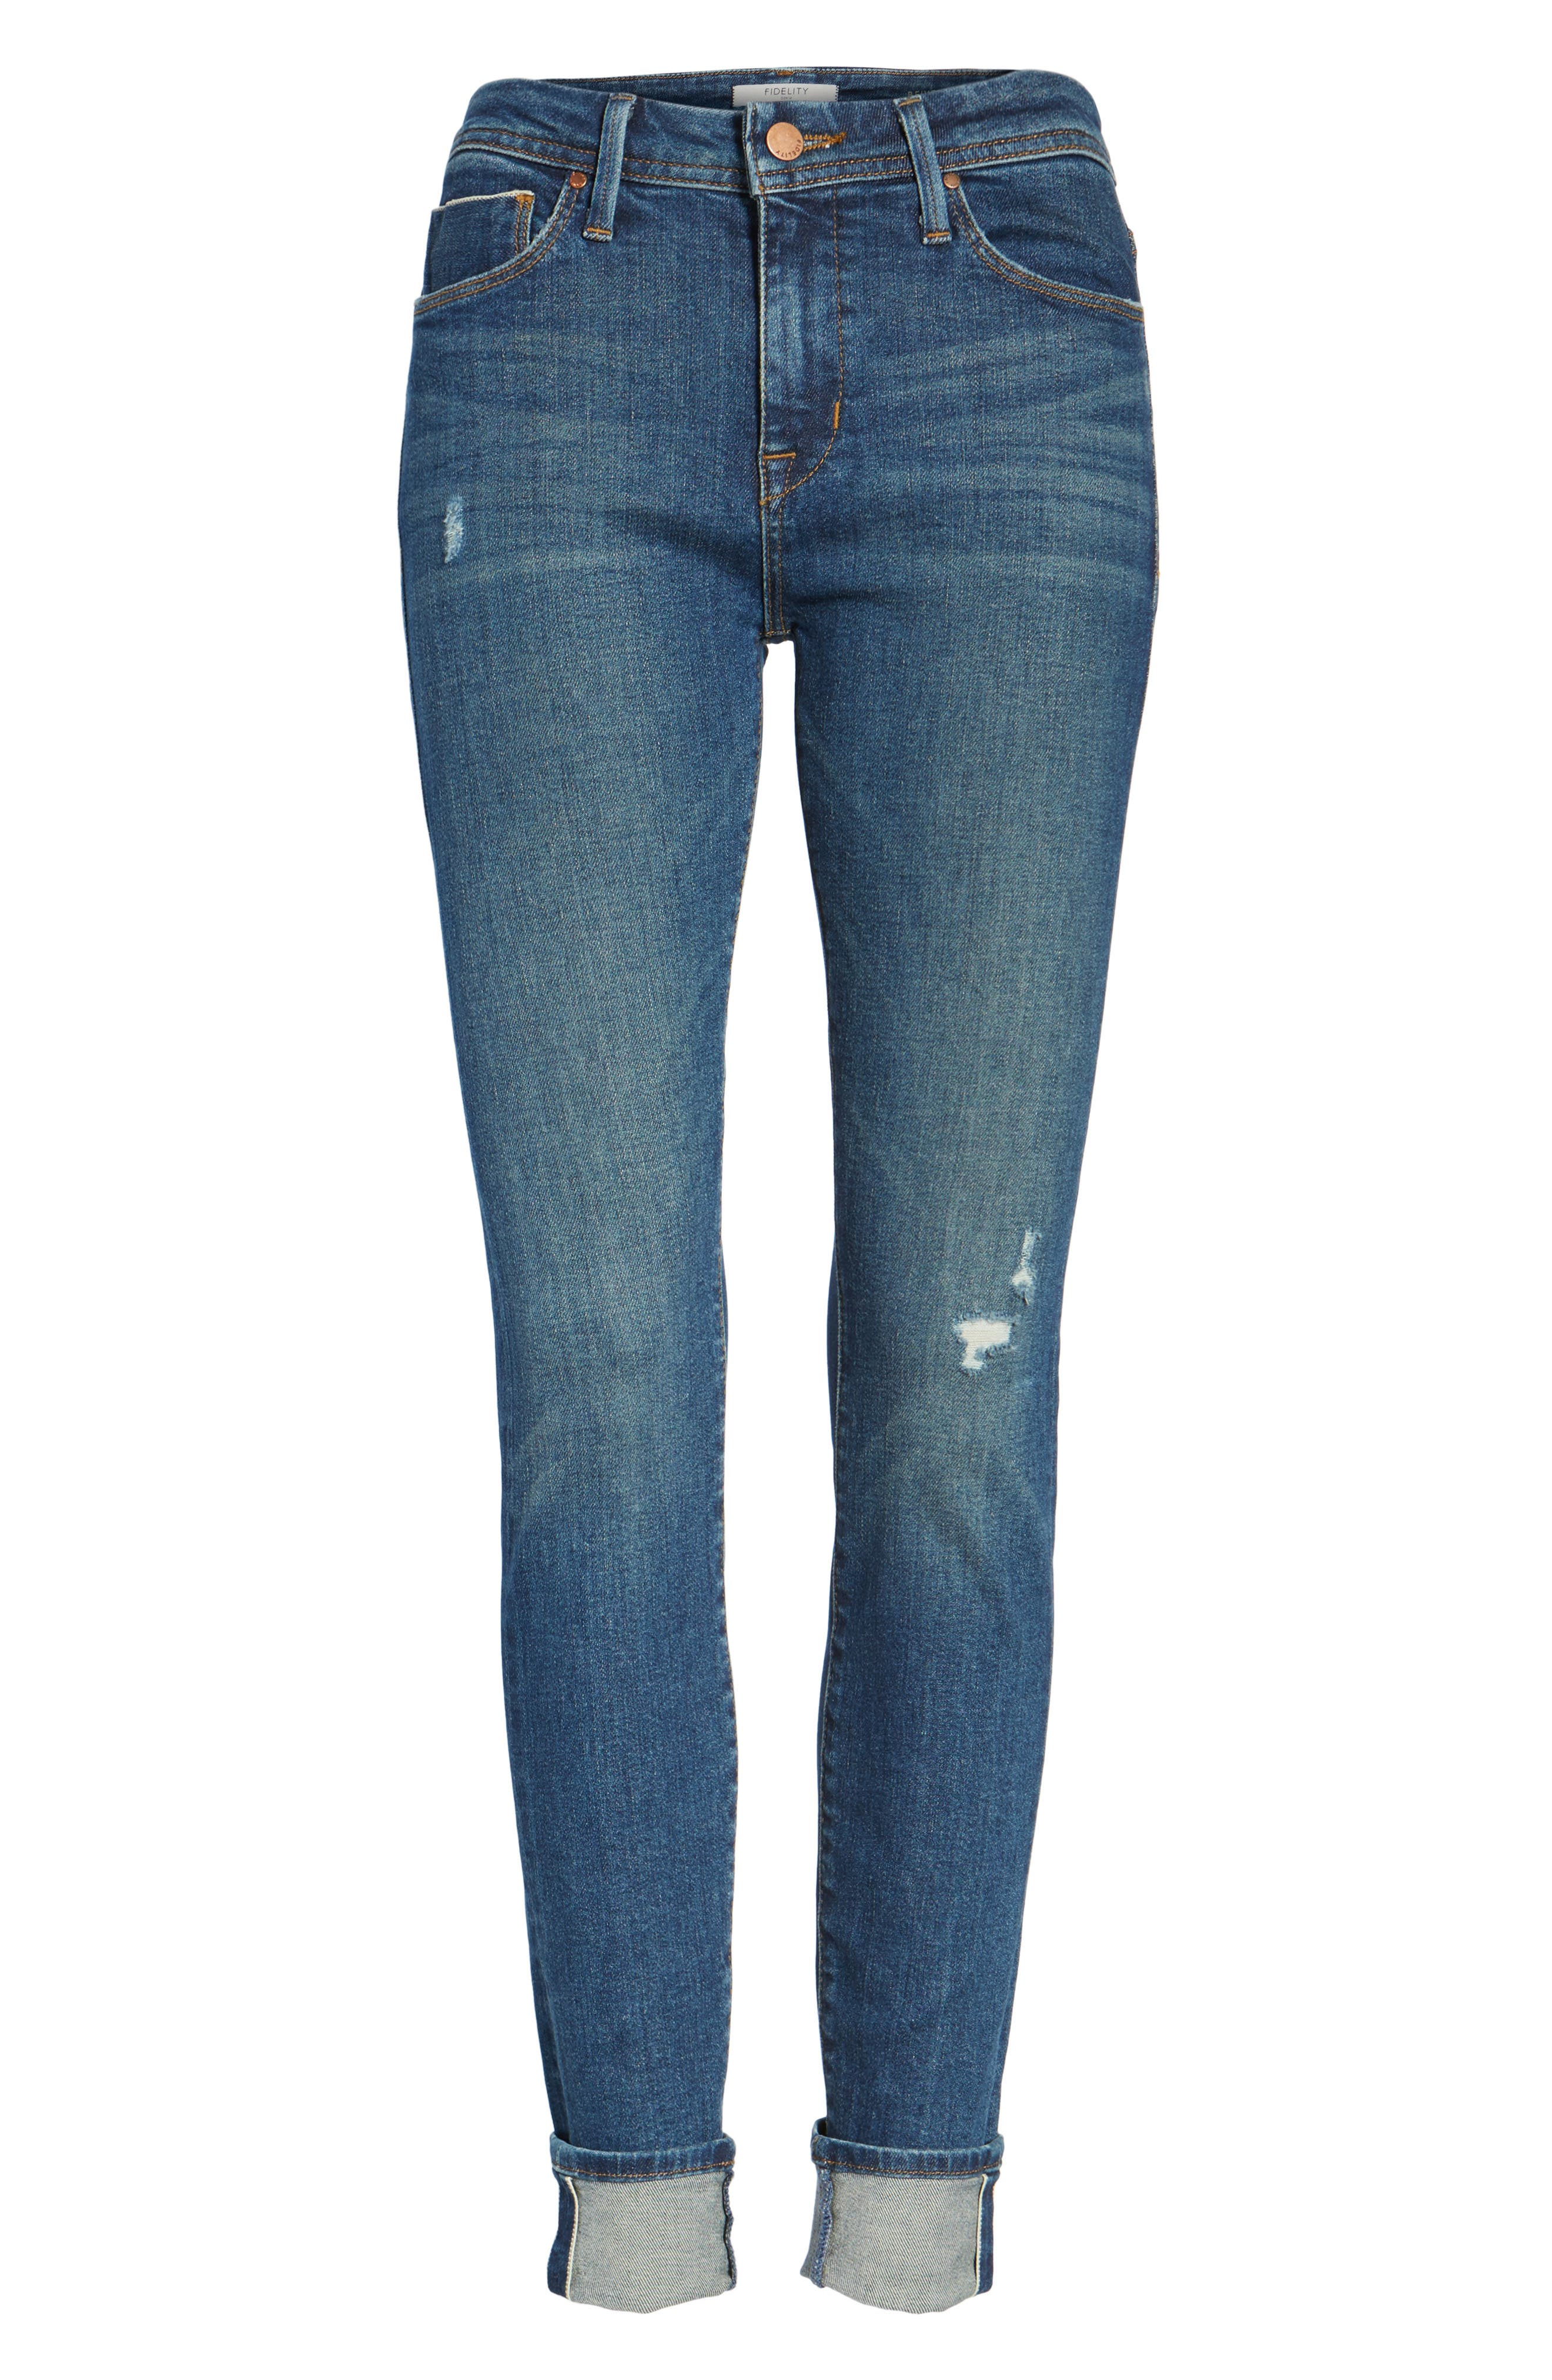 Belvedere Crop Skinny Jeans,                             Alternate thumbnail 6, color,                             8 Year Aged